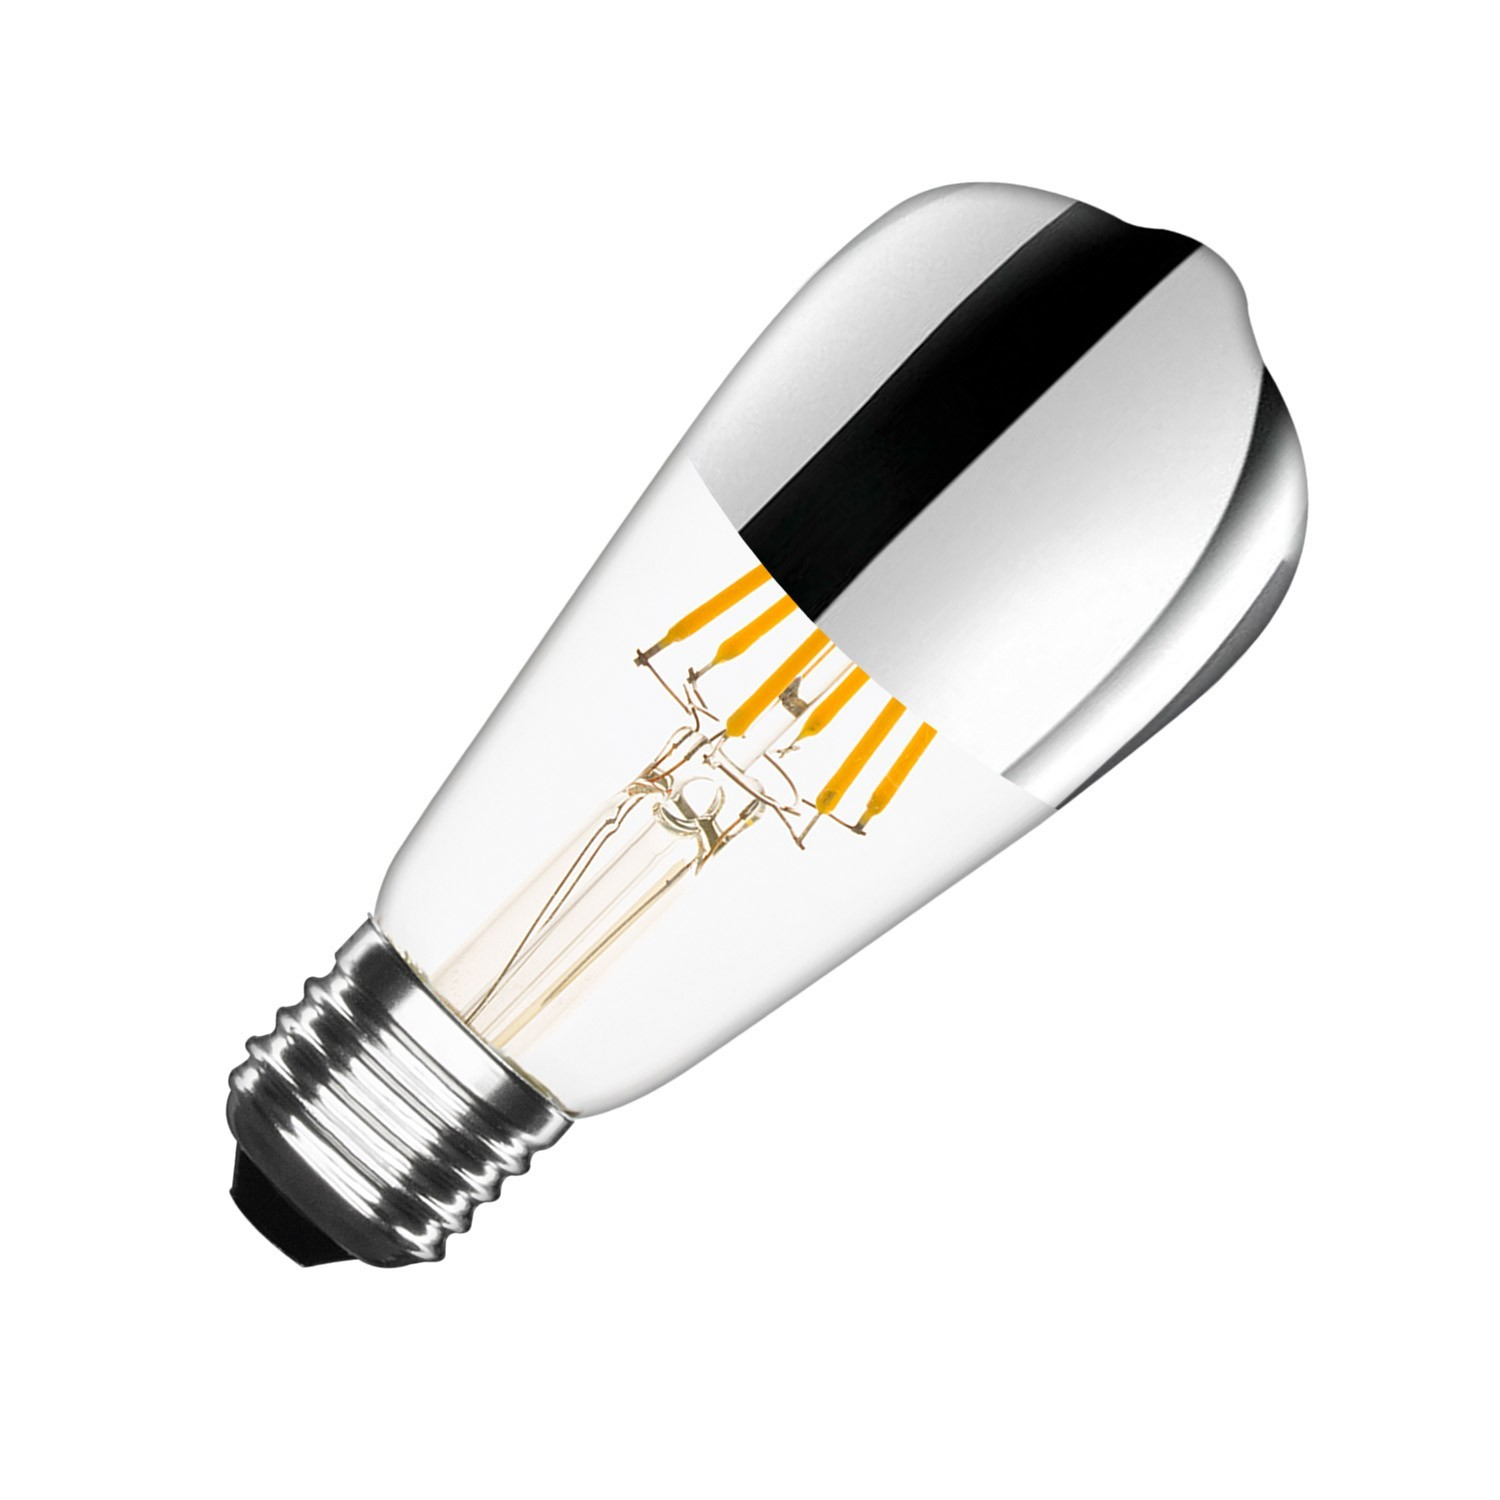 Ampoule Led Dimmable Ampoule Led E27 Dimmable Filament Chrome Reflect Big Lemon St64 7 5w Planete Leds Ampoules Led Spot Led Kit Xénon En Vente En Ligne